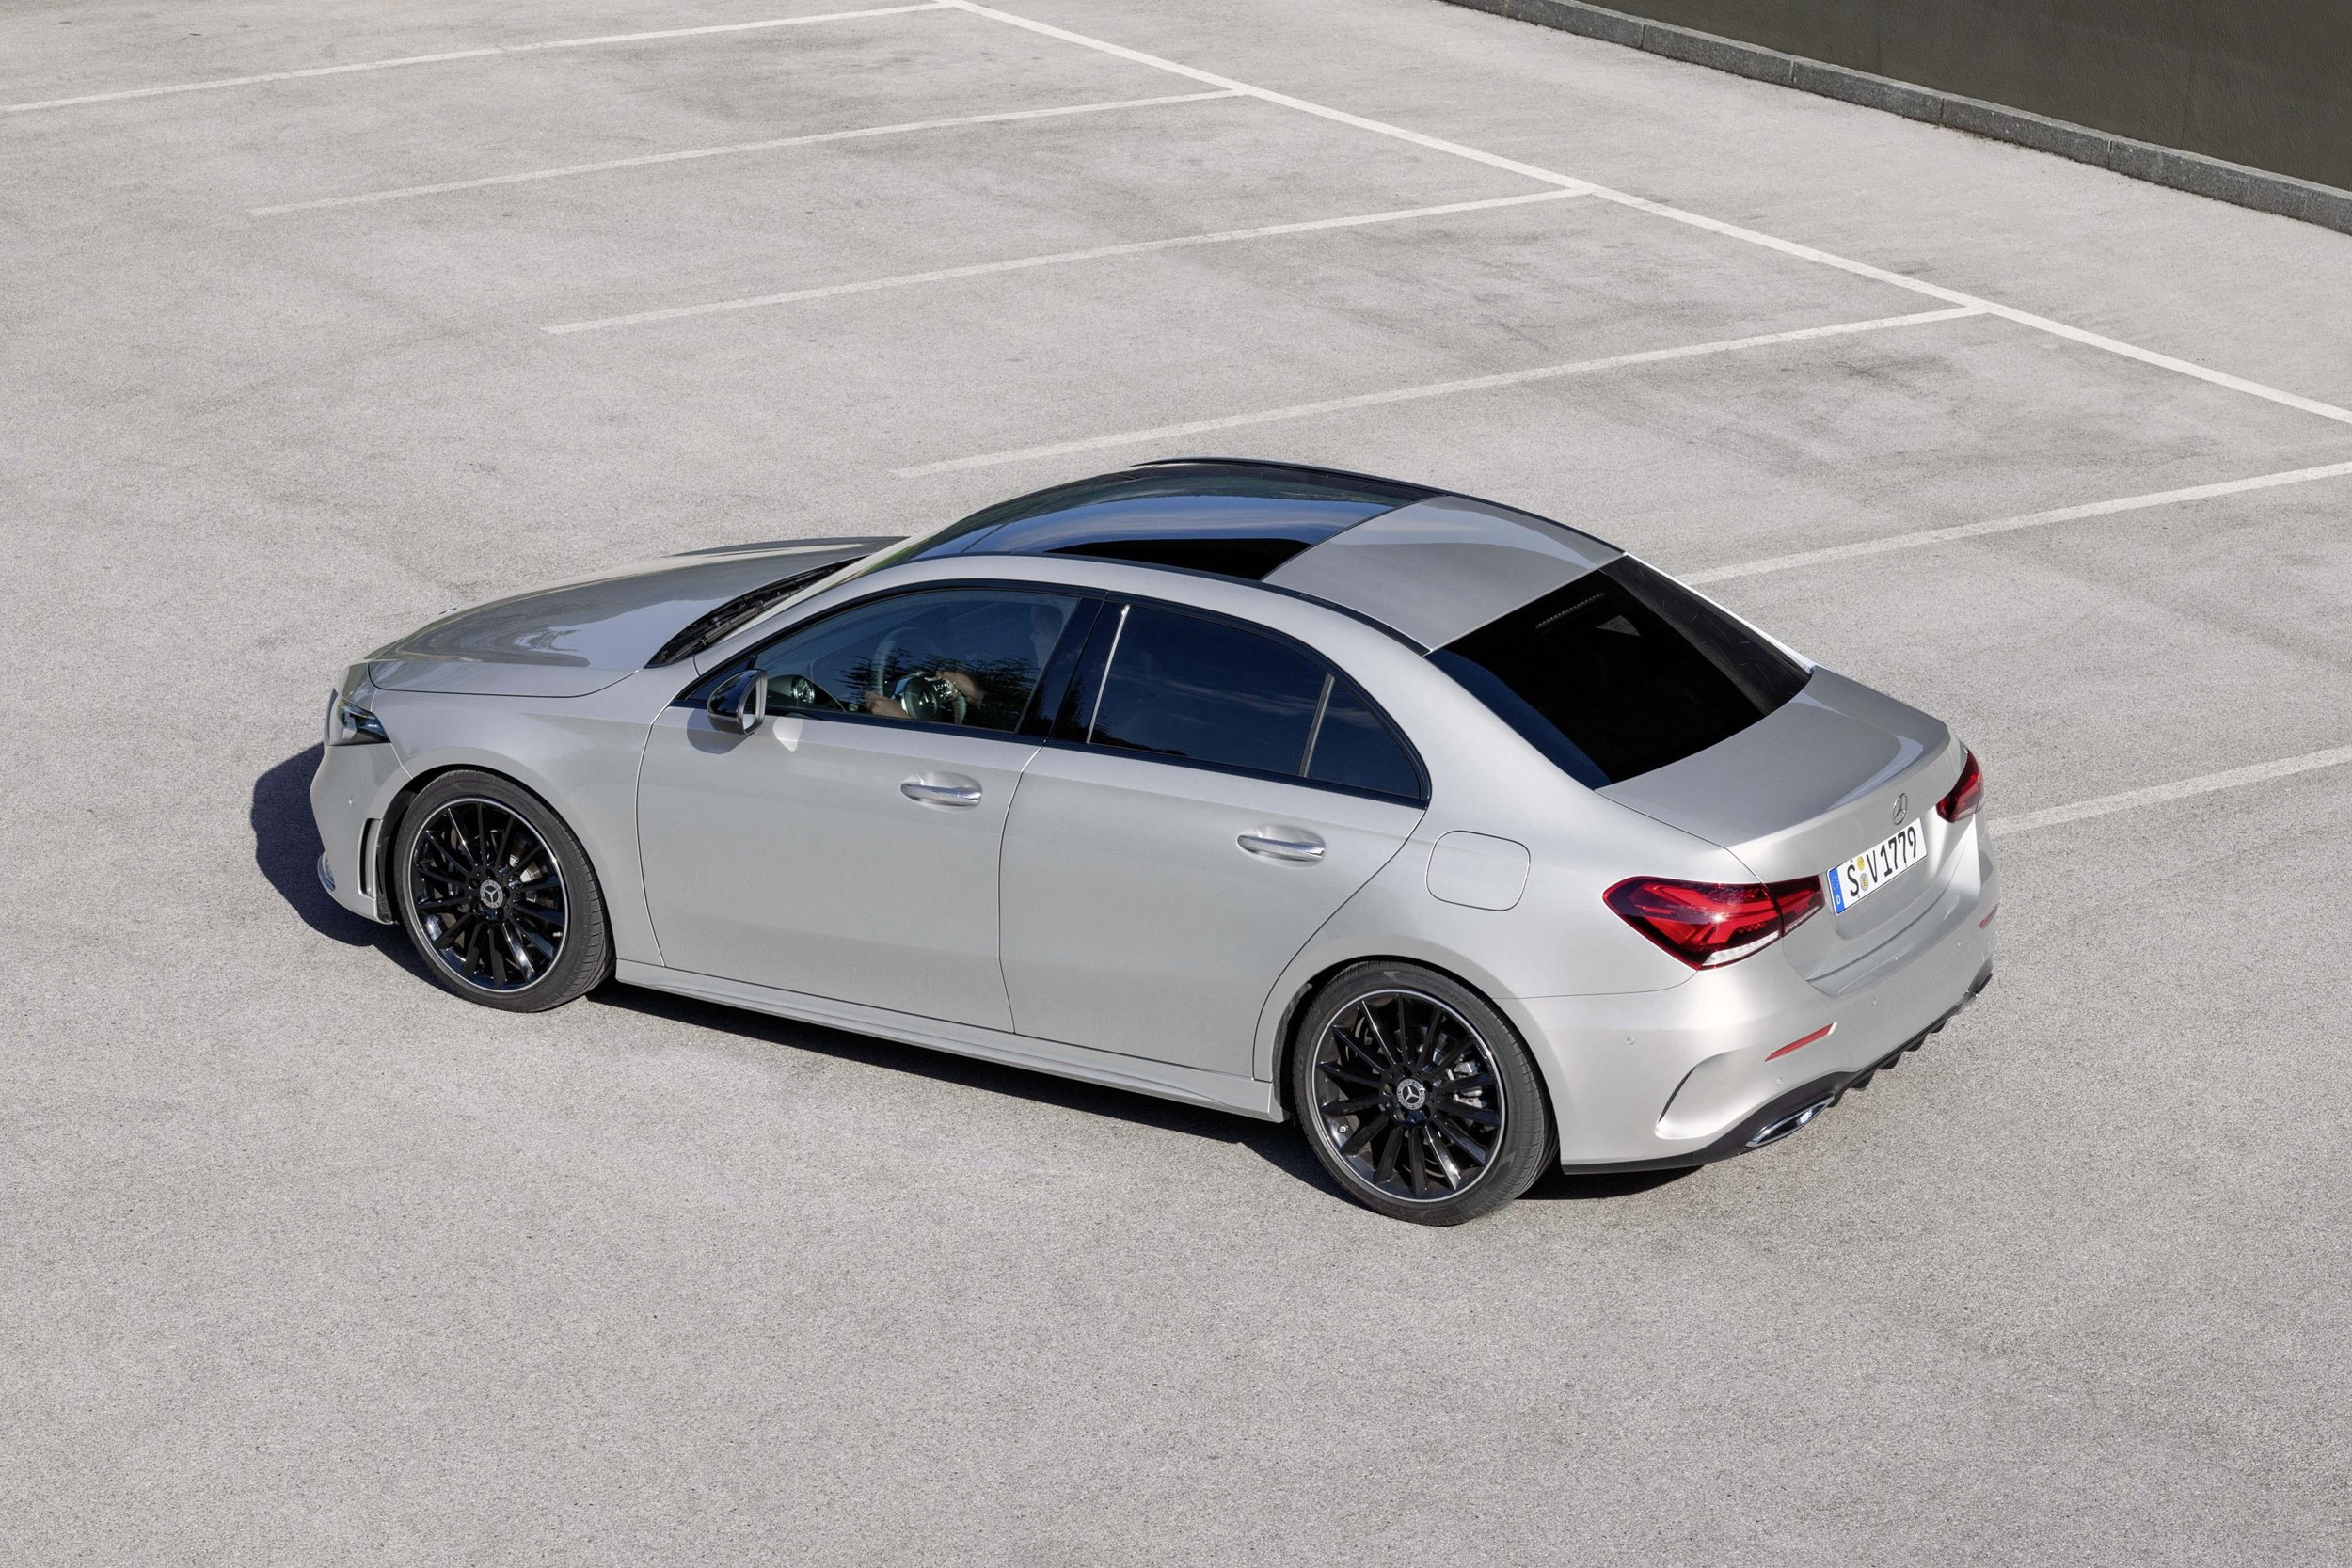 mercedes a class saloon prices and co2 emissions manufacturer news